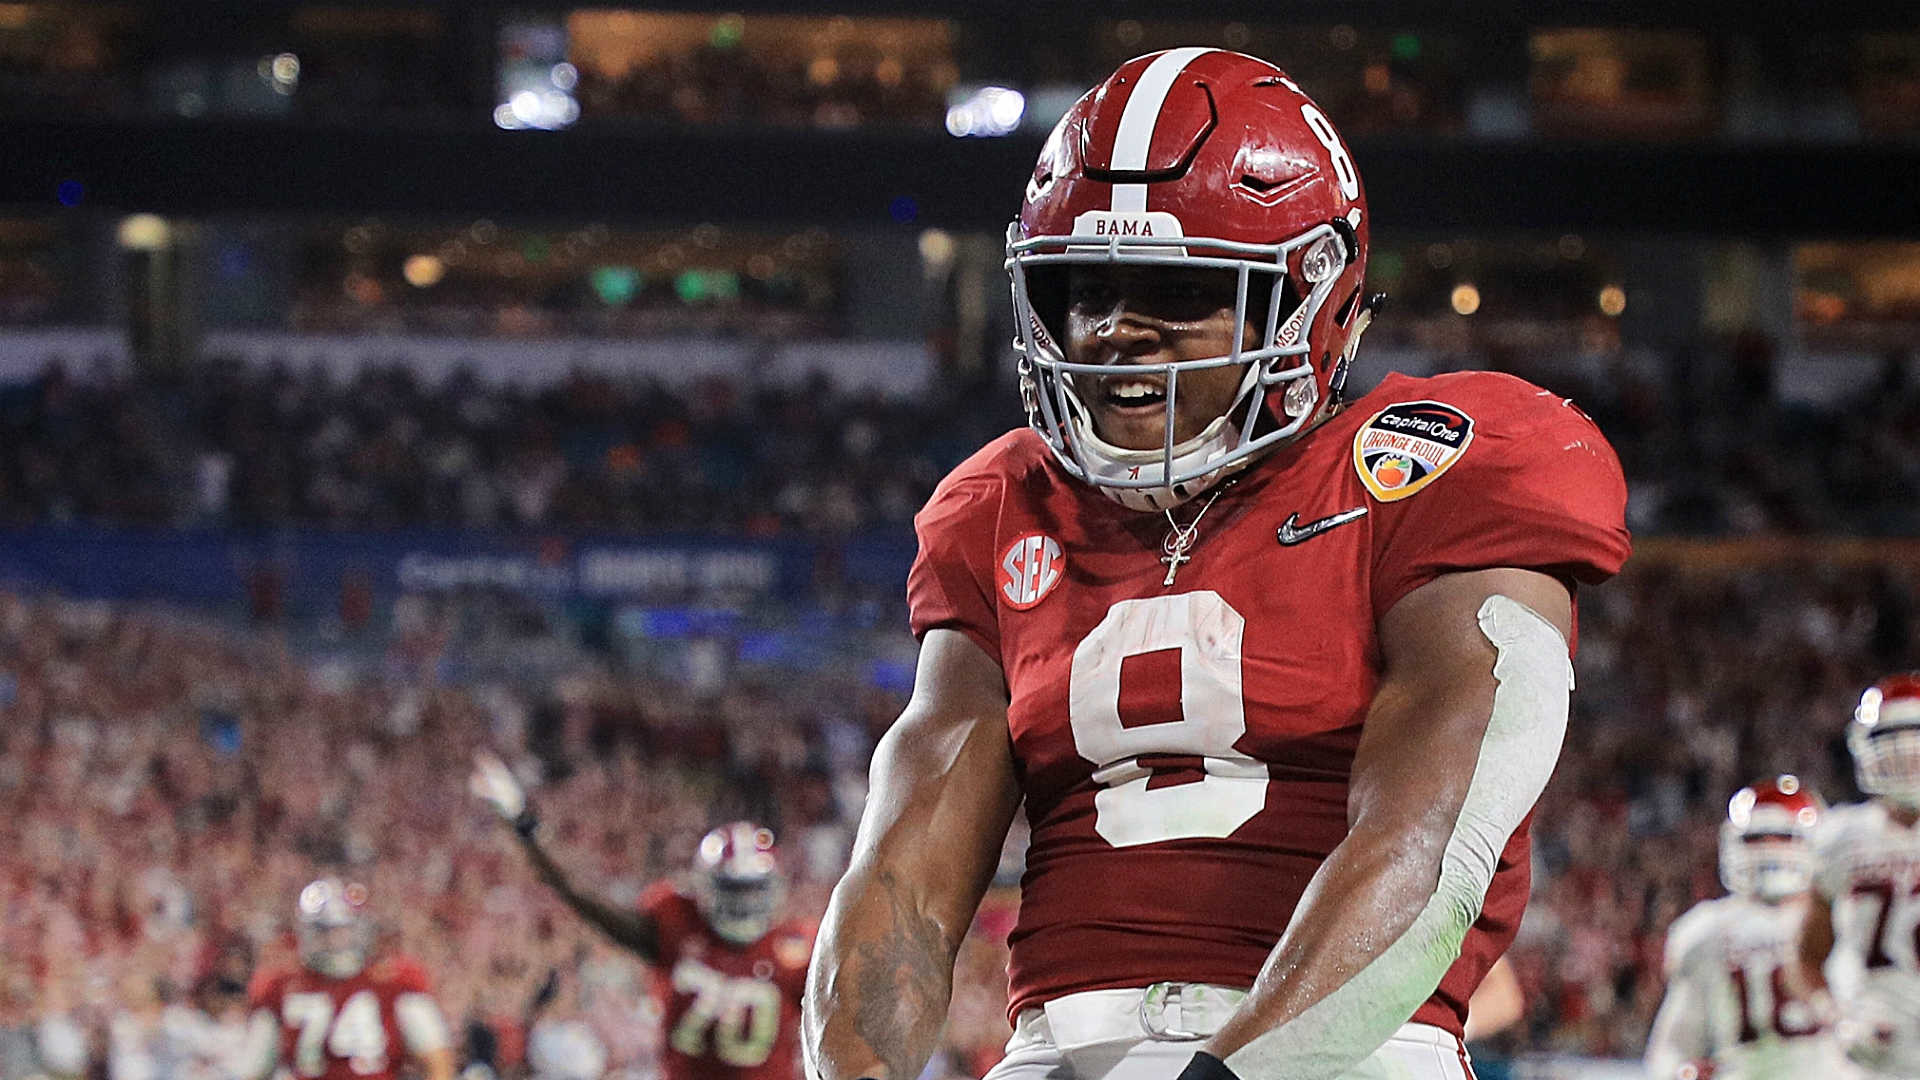 1920x1080 Josh Jacobs looks to live up to Alabama's championship game lineage